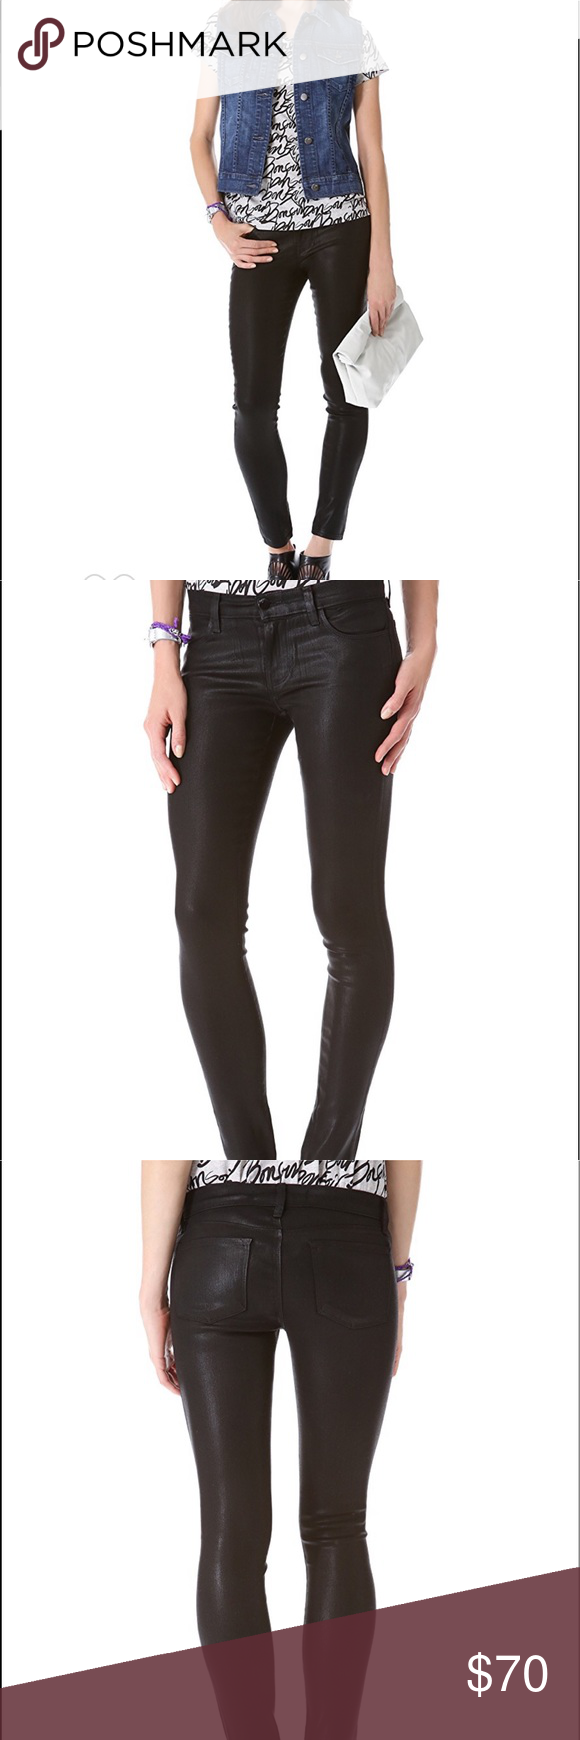 aaec026c71c7 NEW J Brand 620 Super Skinny Fearless Jeans Perfect going out jeans! Great  alternative to